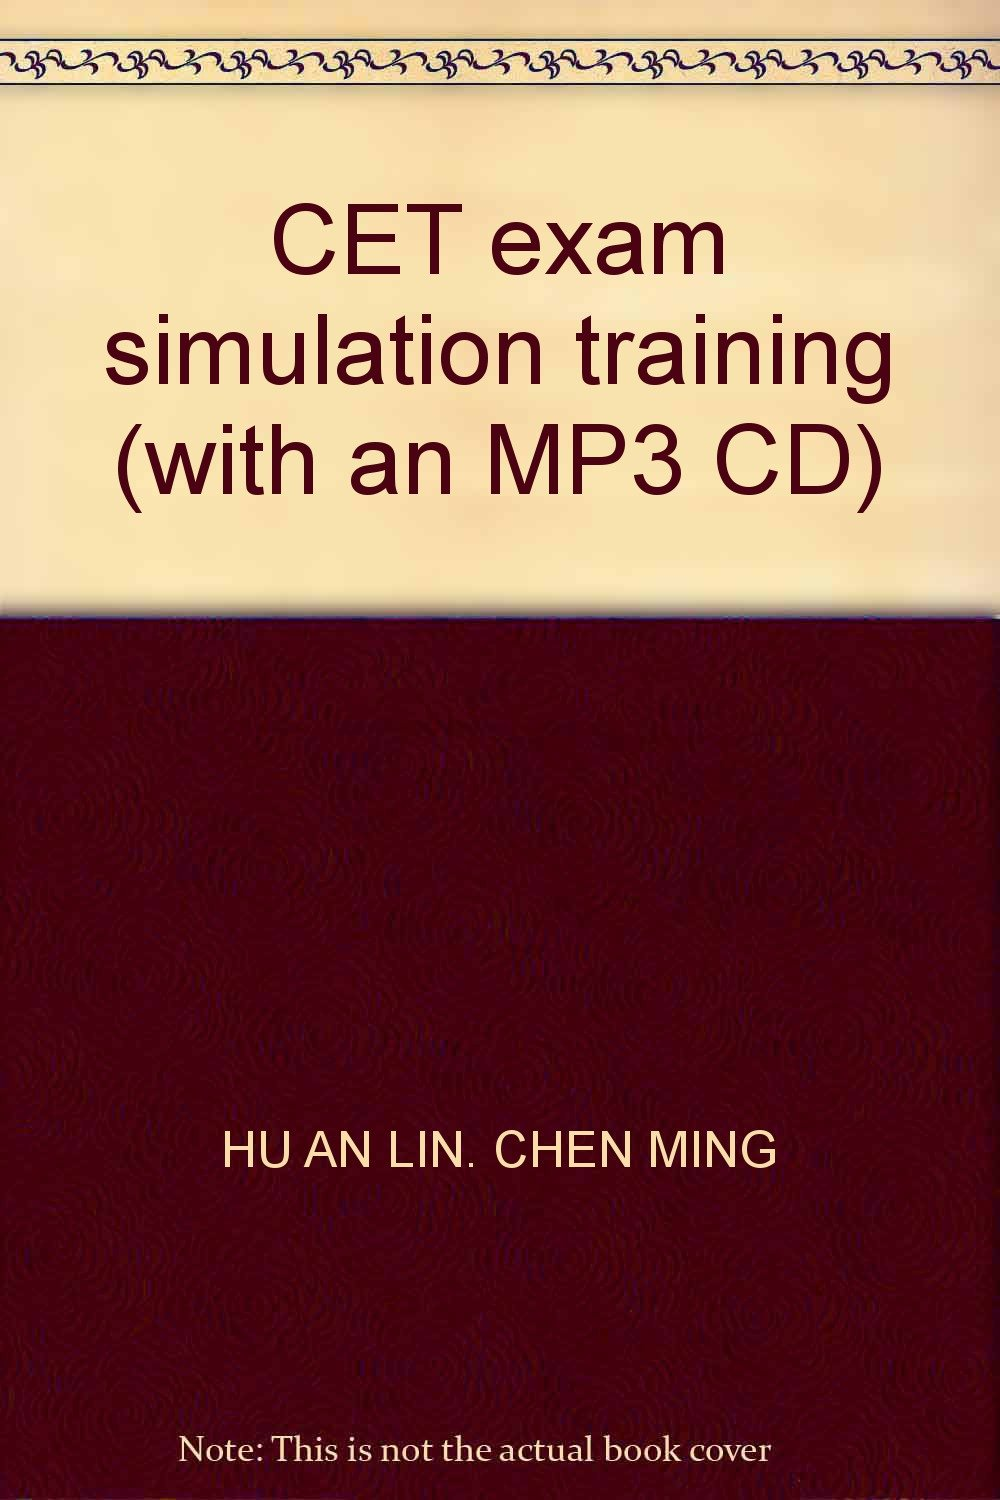 CET exam simulation training (with an MP3 CD) pdf